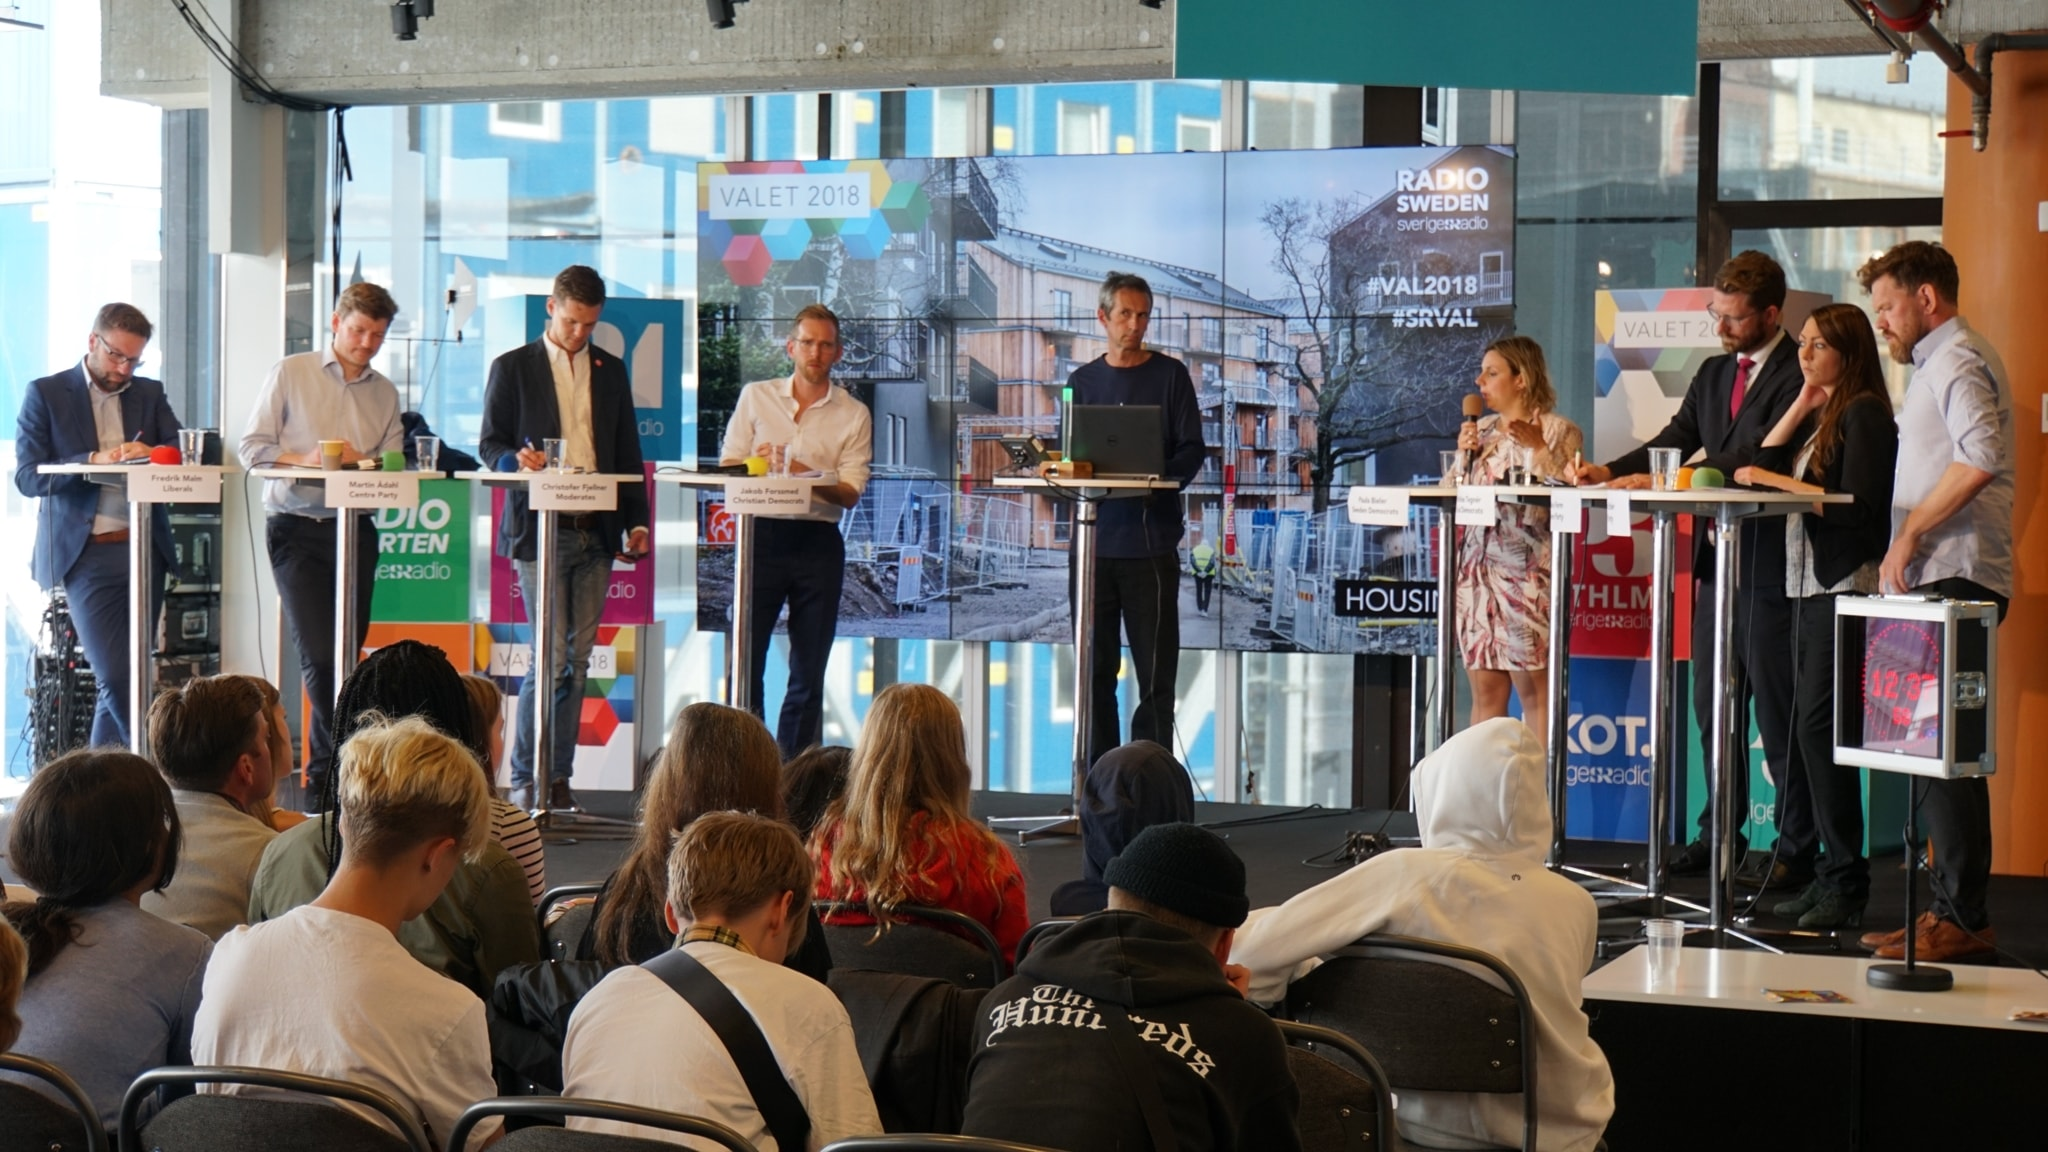 Radio Sweden Weekly: Election debate special live from Kulturhuset in Stockholm